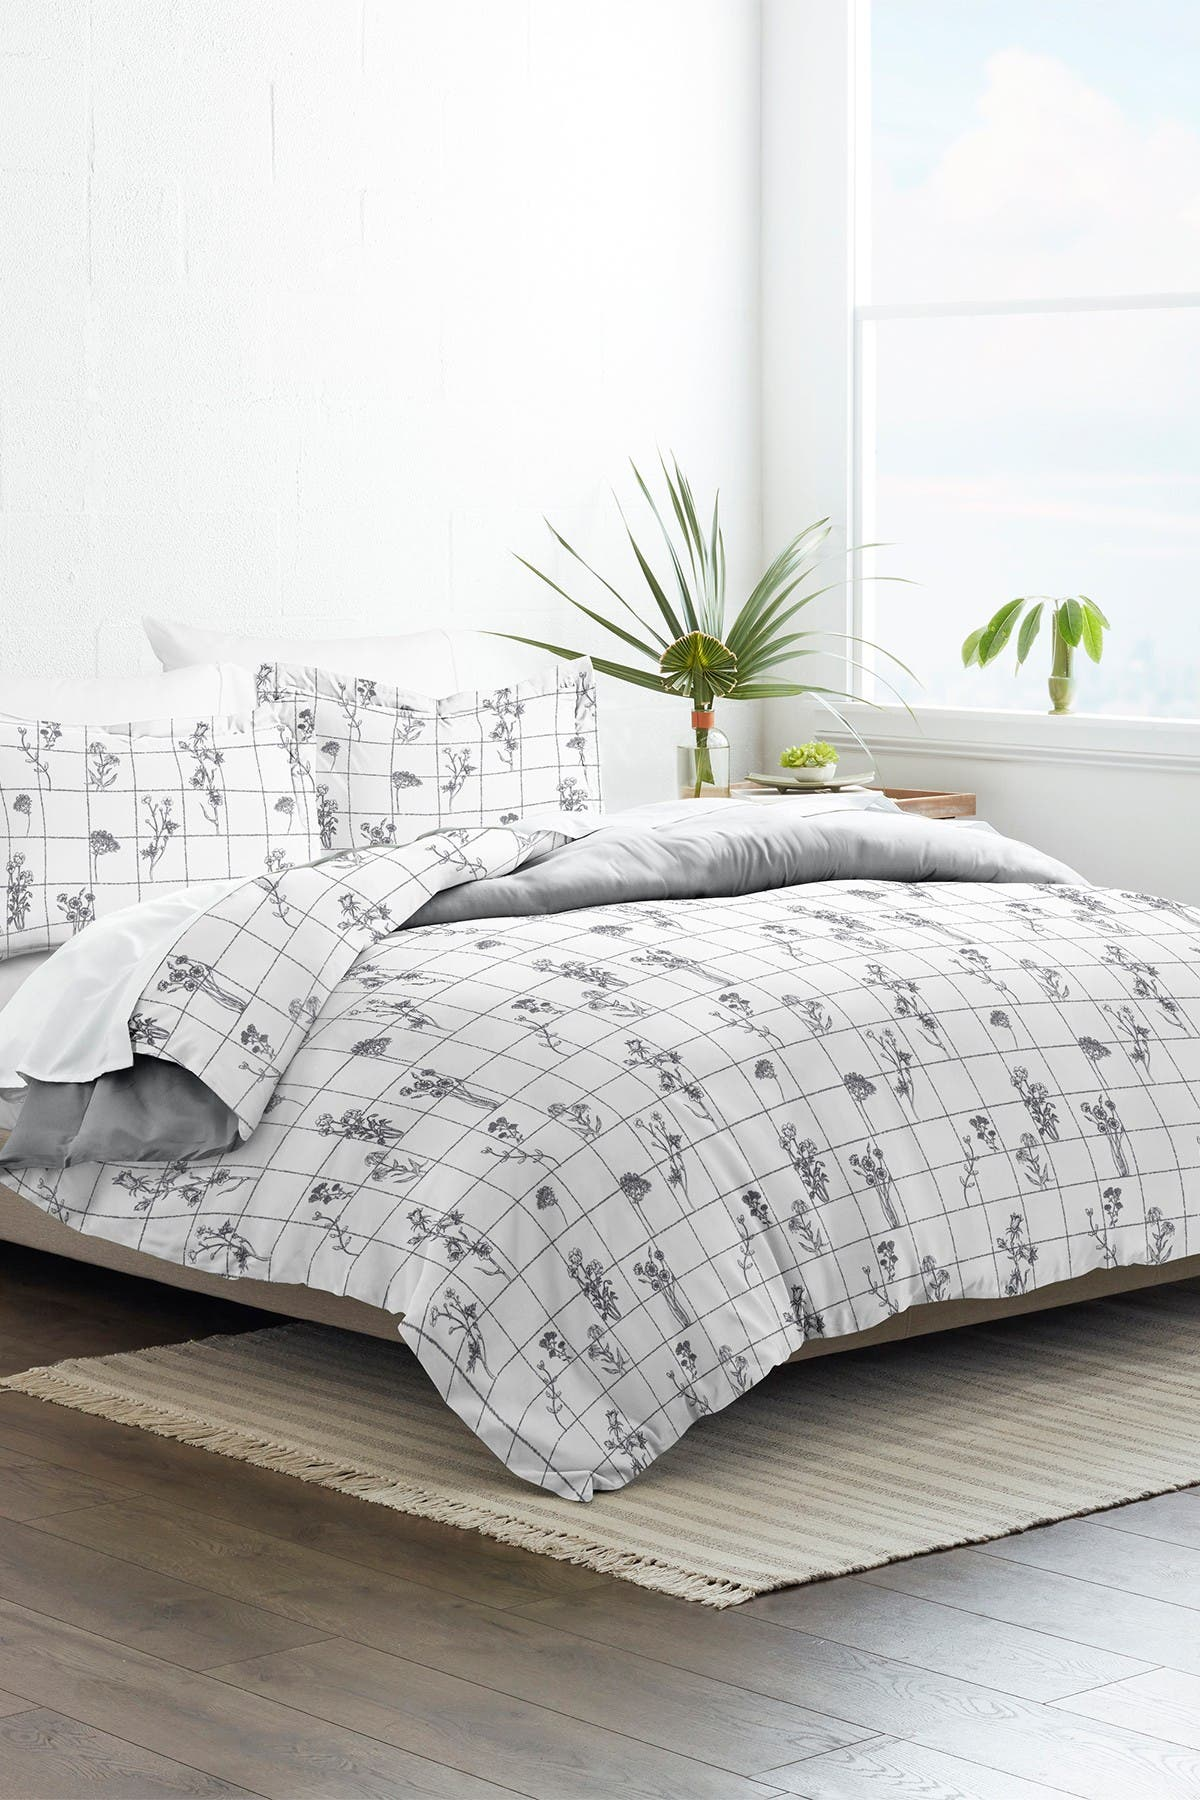 Image of IENJOY HOME Home Collection Premium Ultra Soft Flower Field Pattern 3-Piece King/California King Reversible Duvet Cover Set - Gray